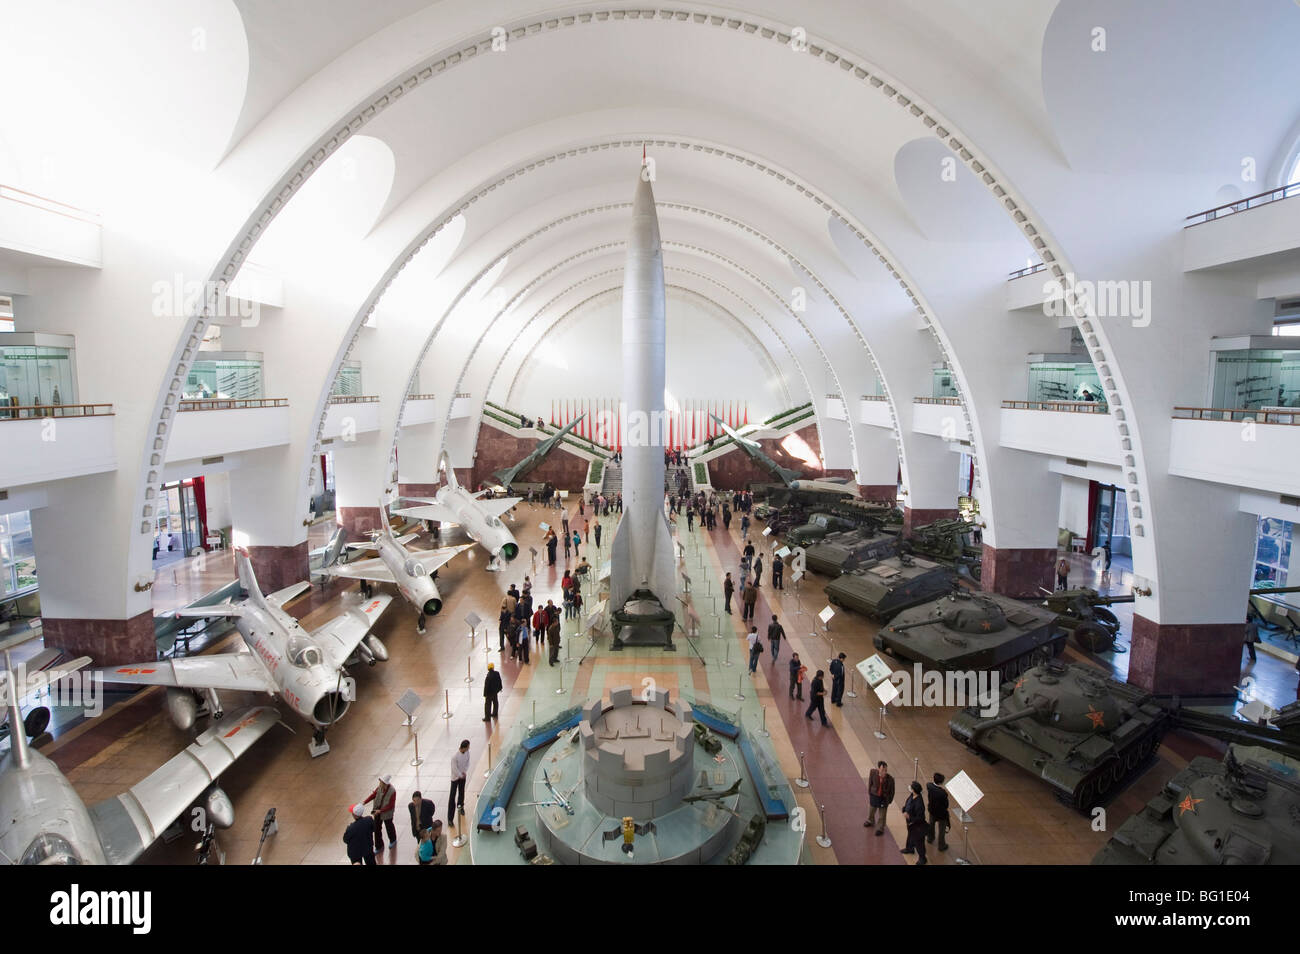 Rocket tanks and planes at the Military Museum, Beijing, China, Asia - Stock Image